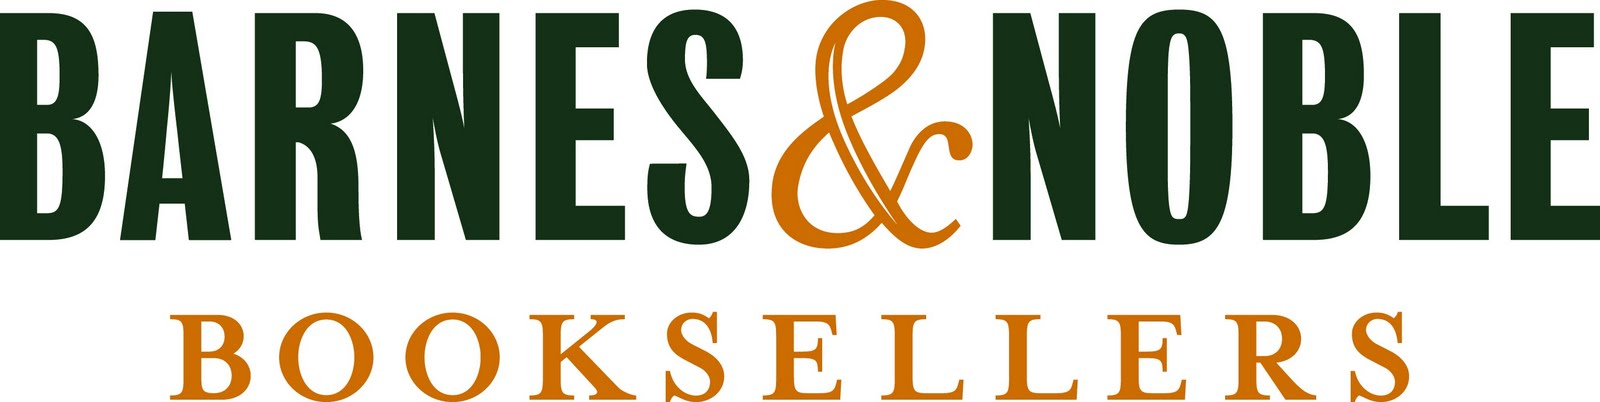 barnes and noble logo - photo #21